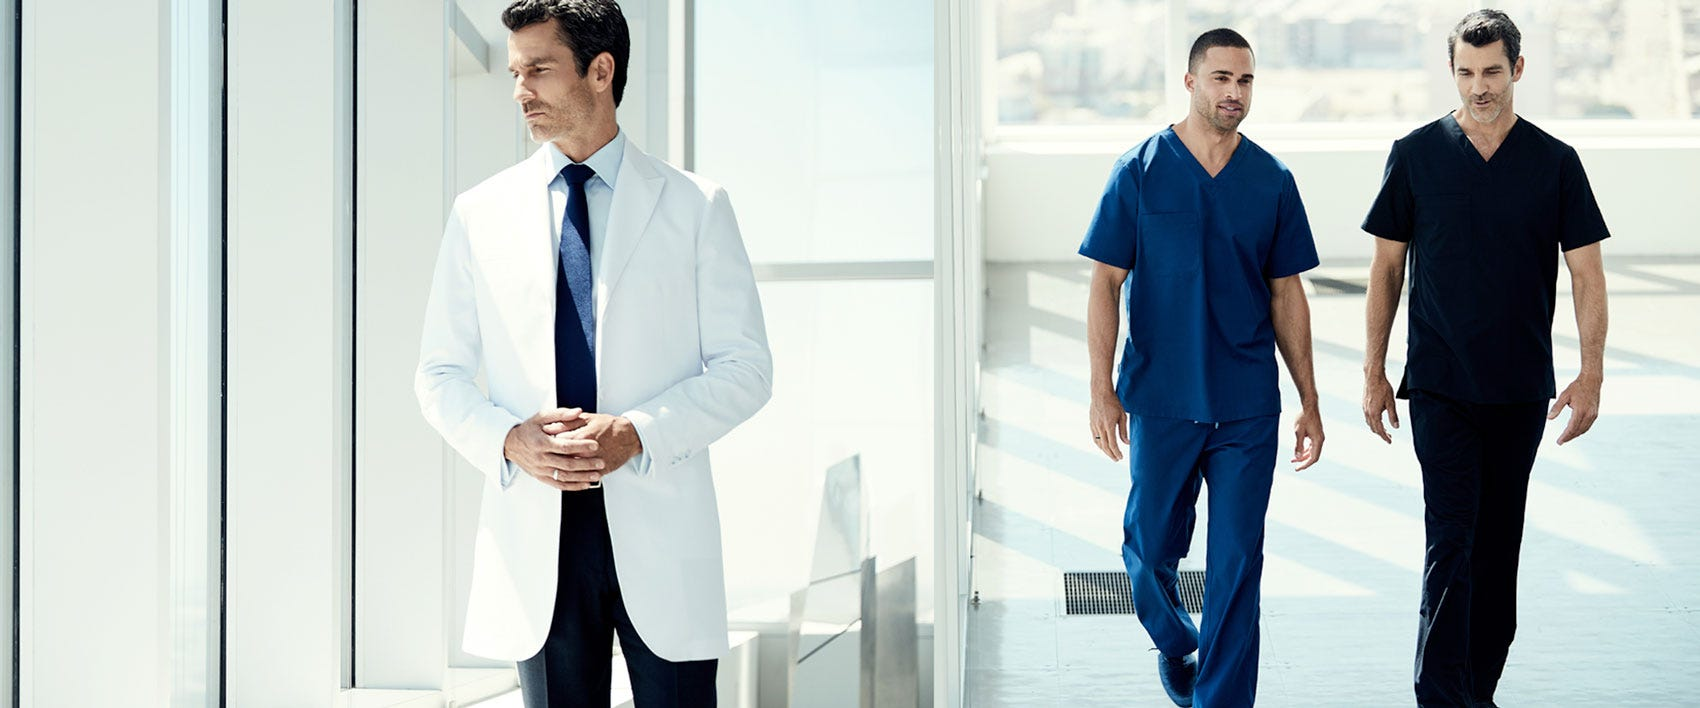 men physician medical uniforms